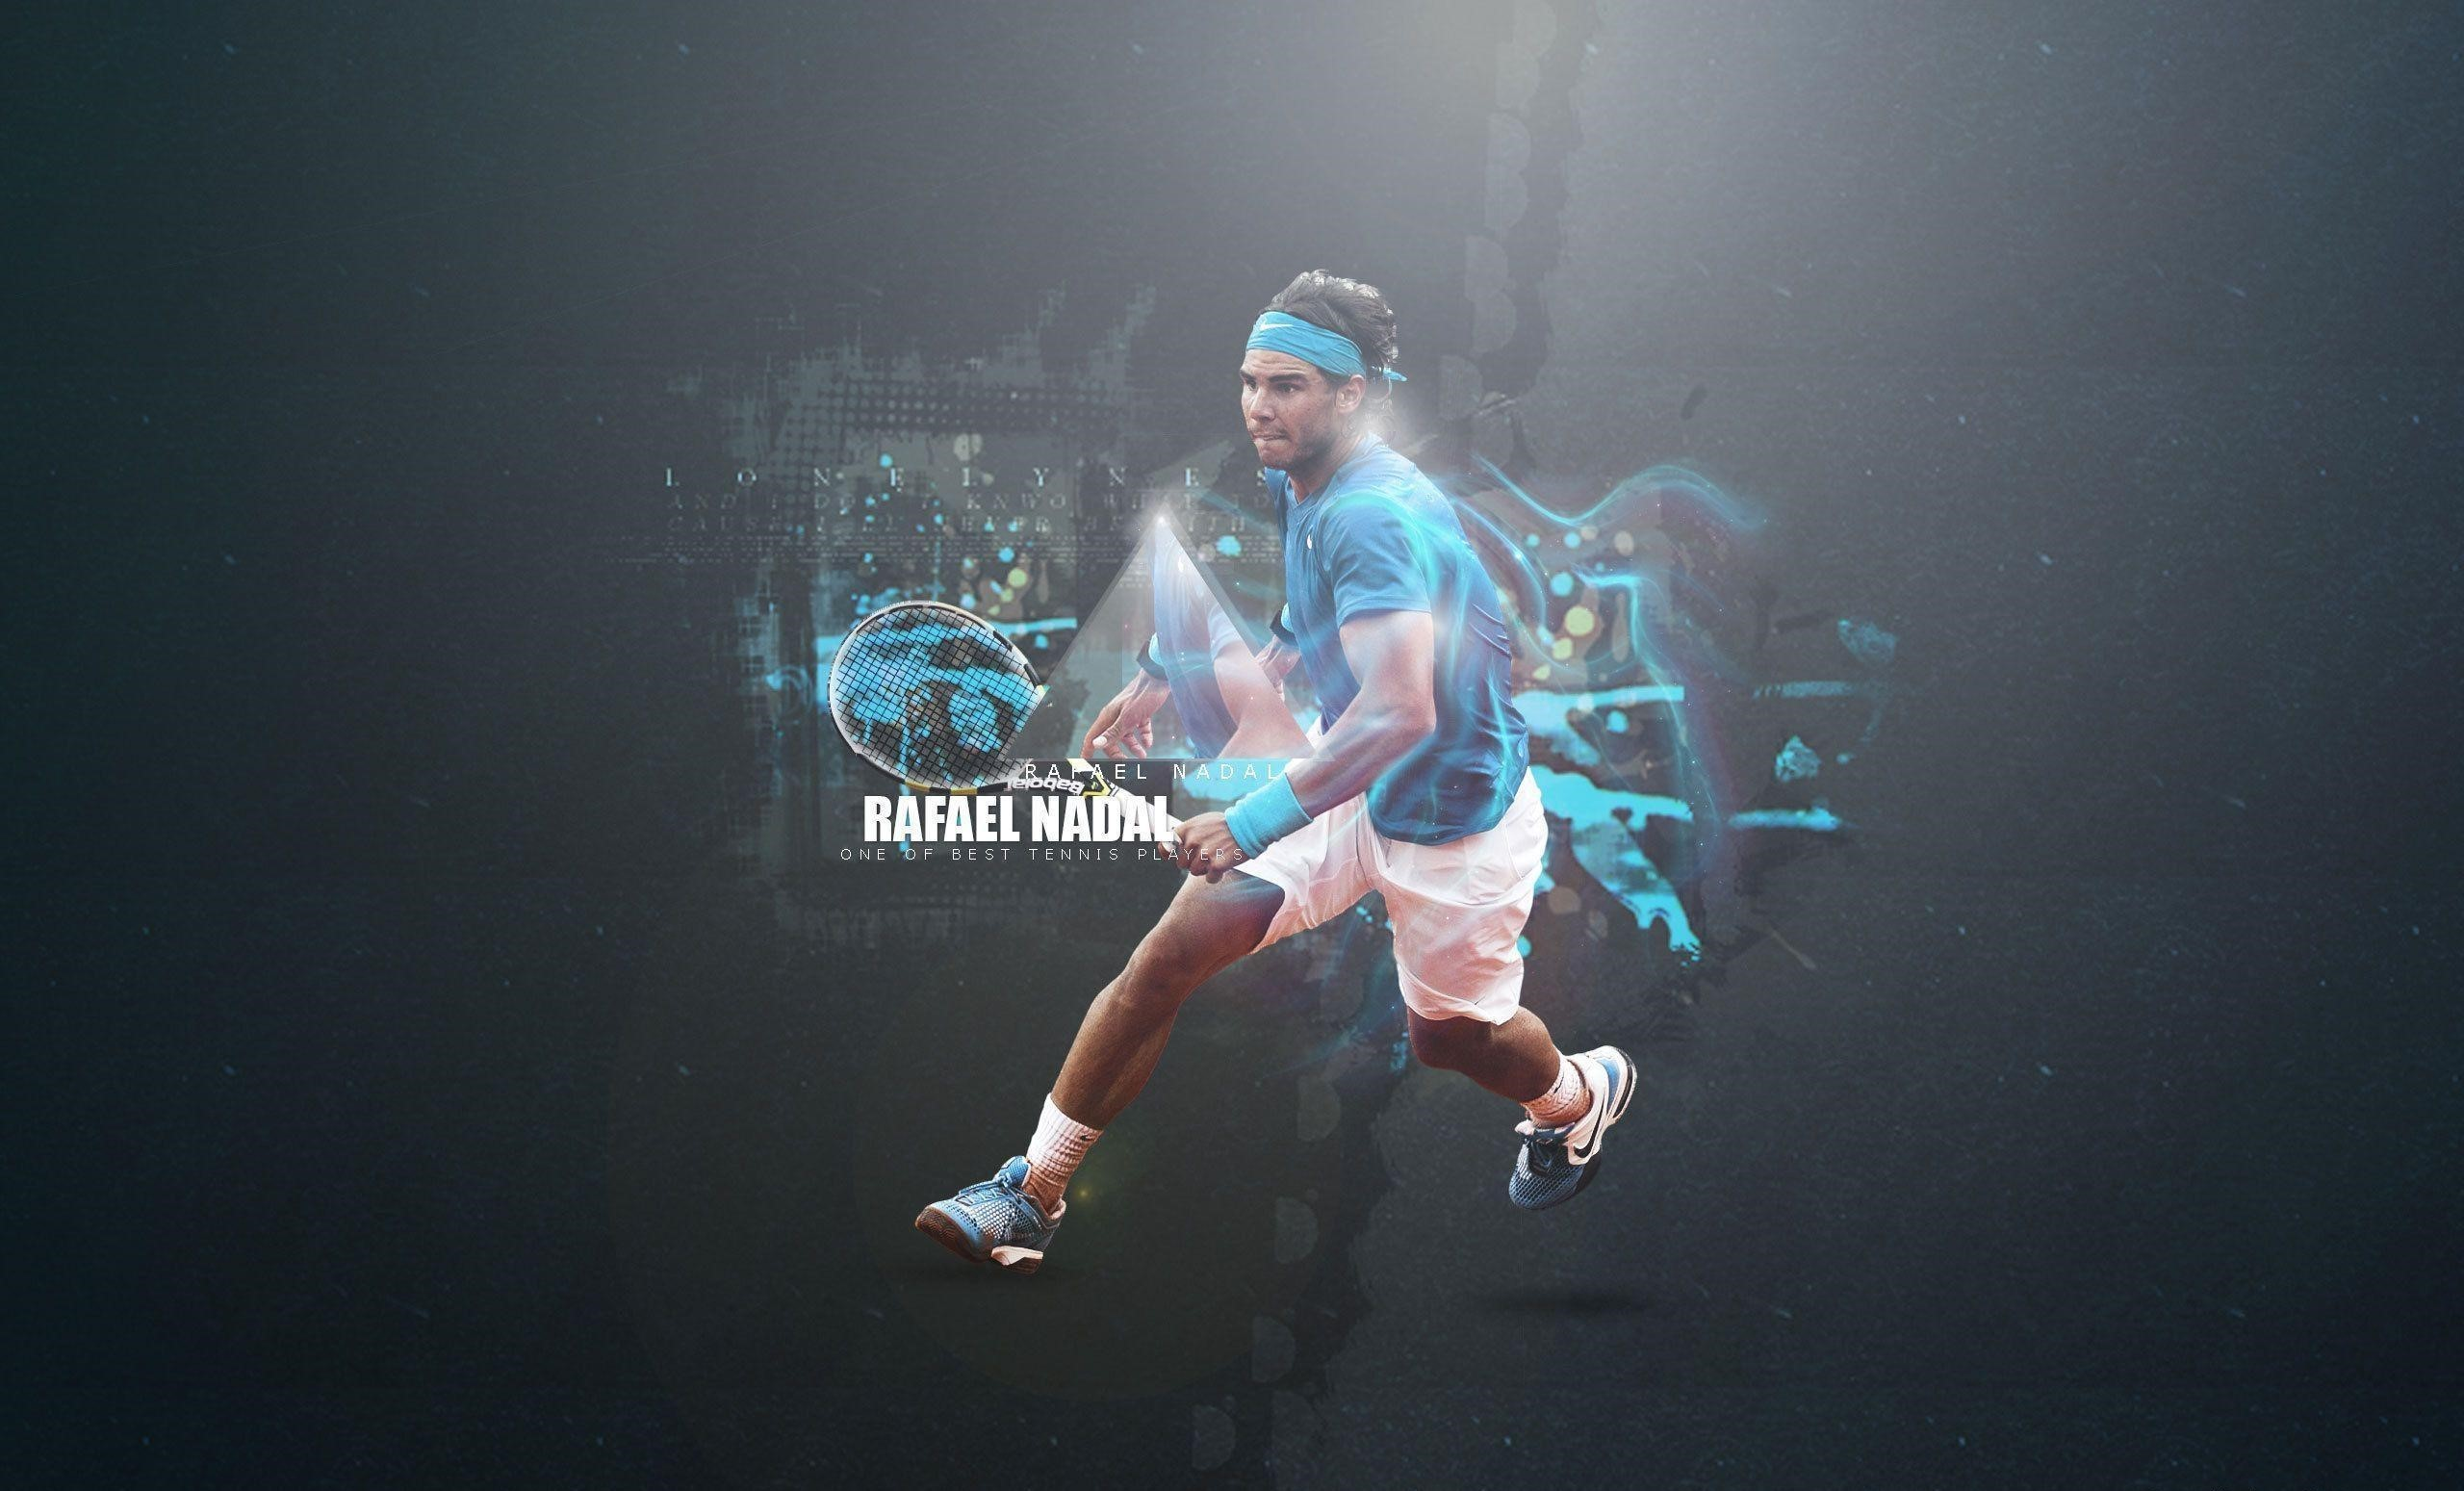 Rafael Nadal Wallpaper Kolpaper Awesome Free Hd Wallpapers